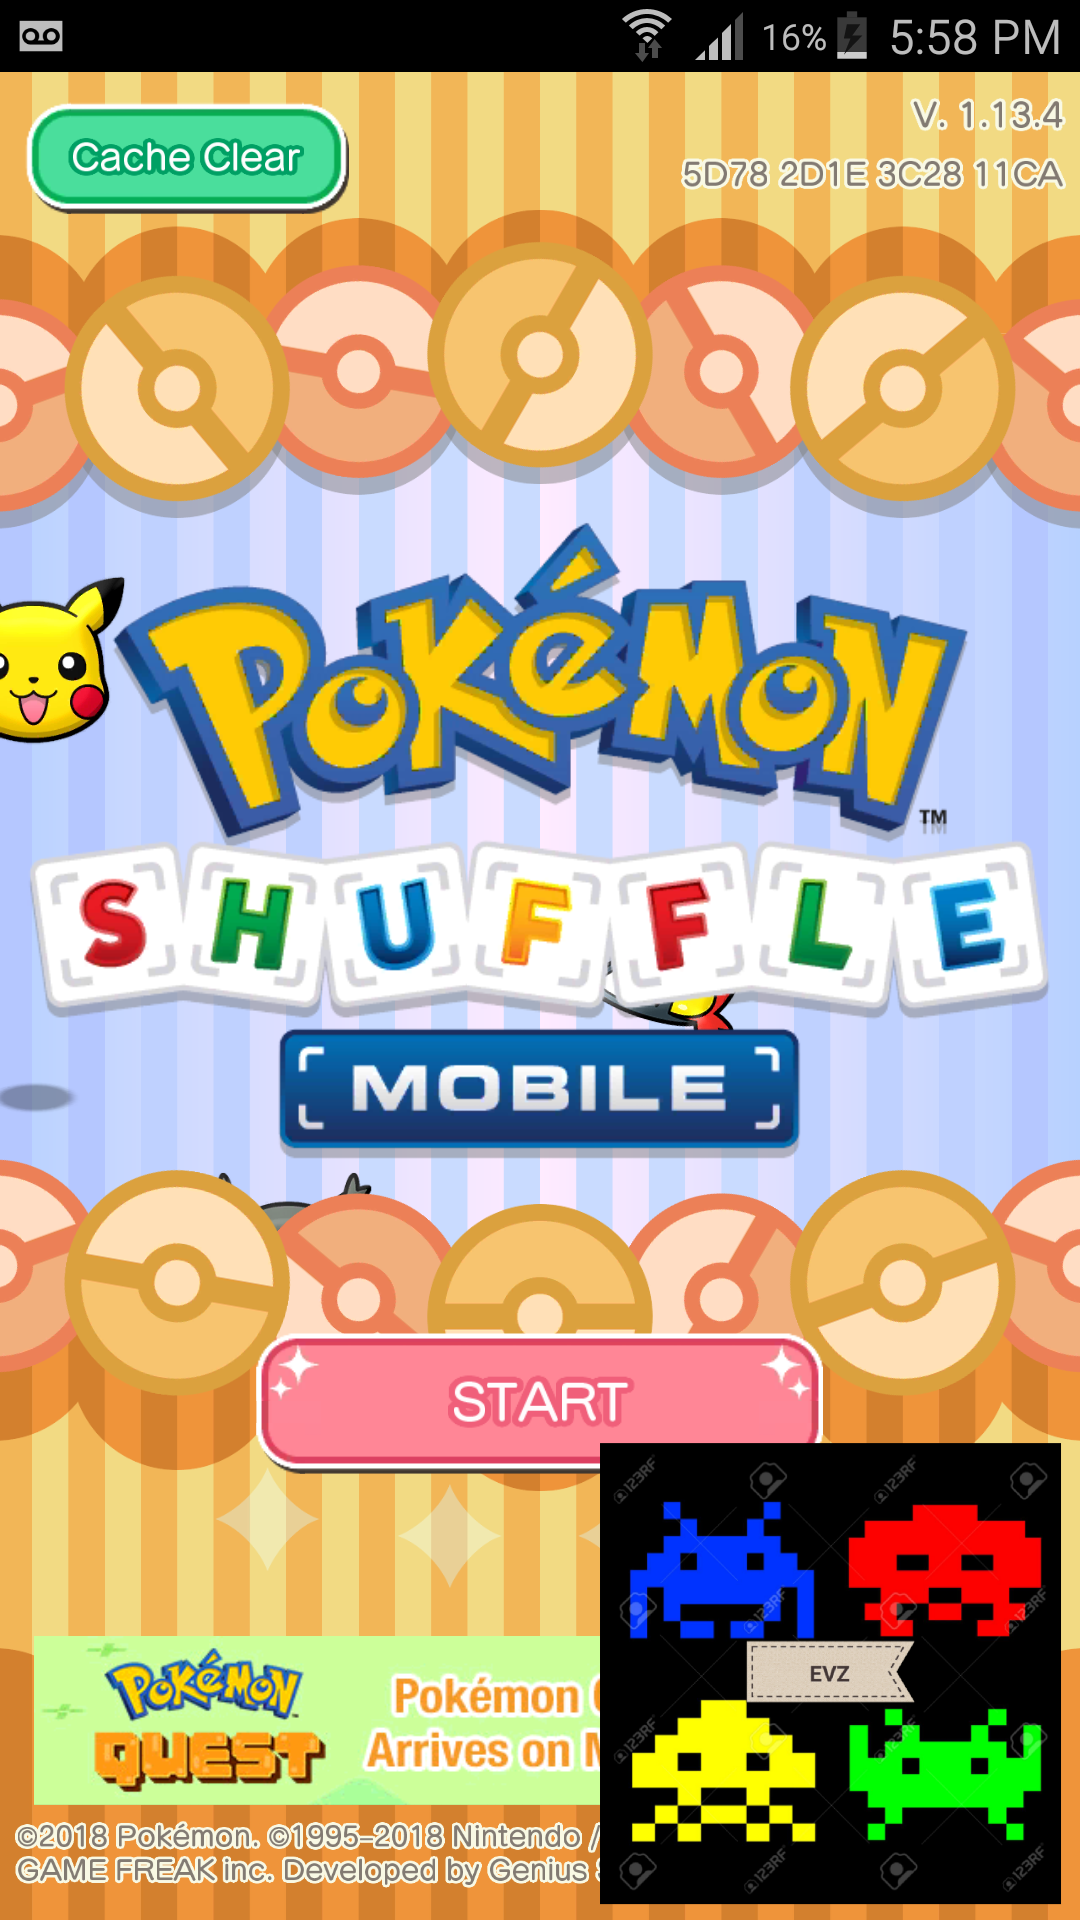 Pokemon Shuffle Mobile: Stage 006 4,256 points